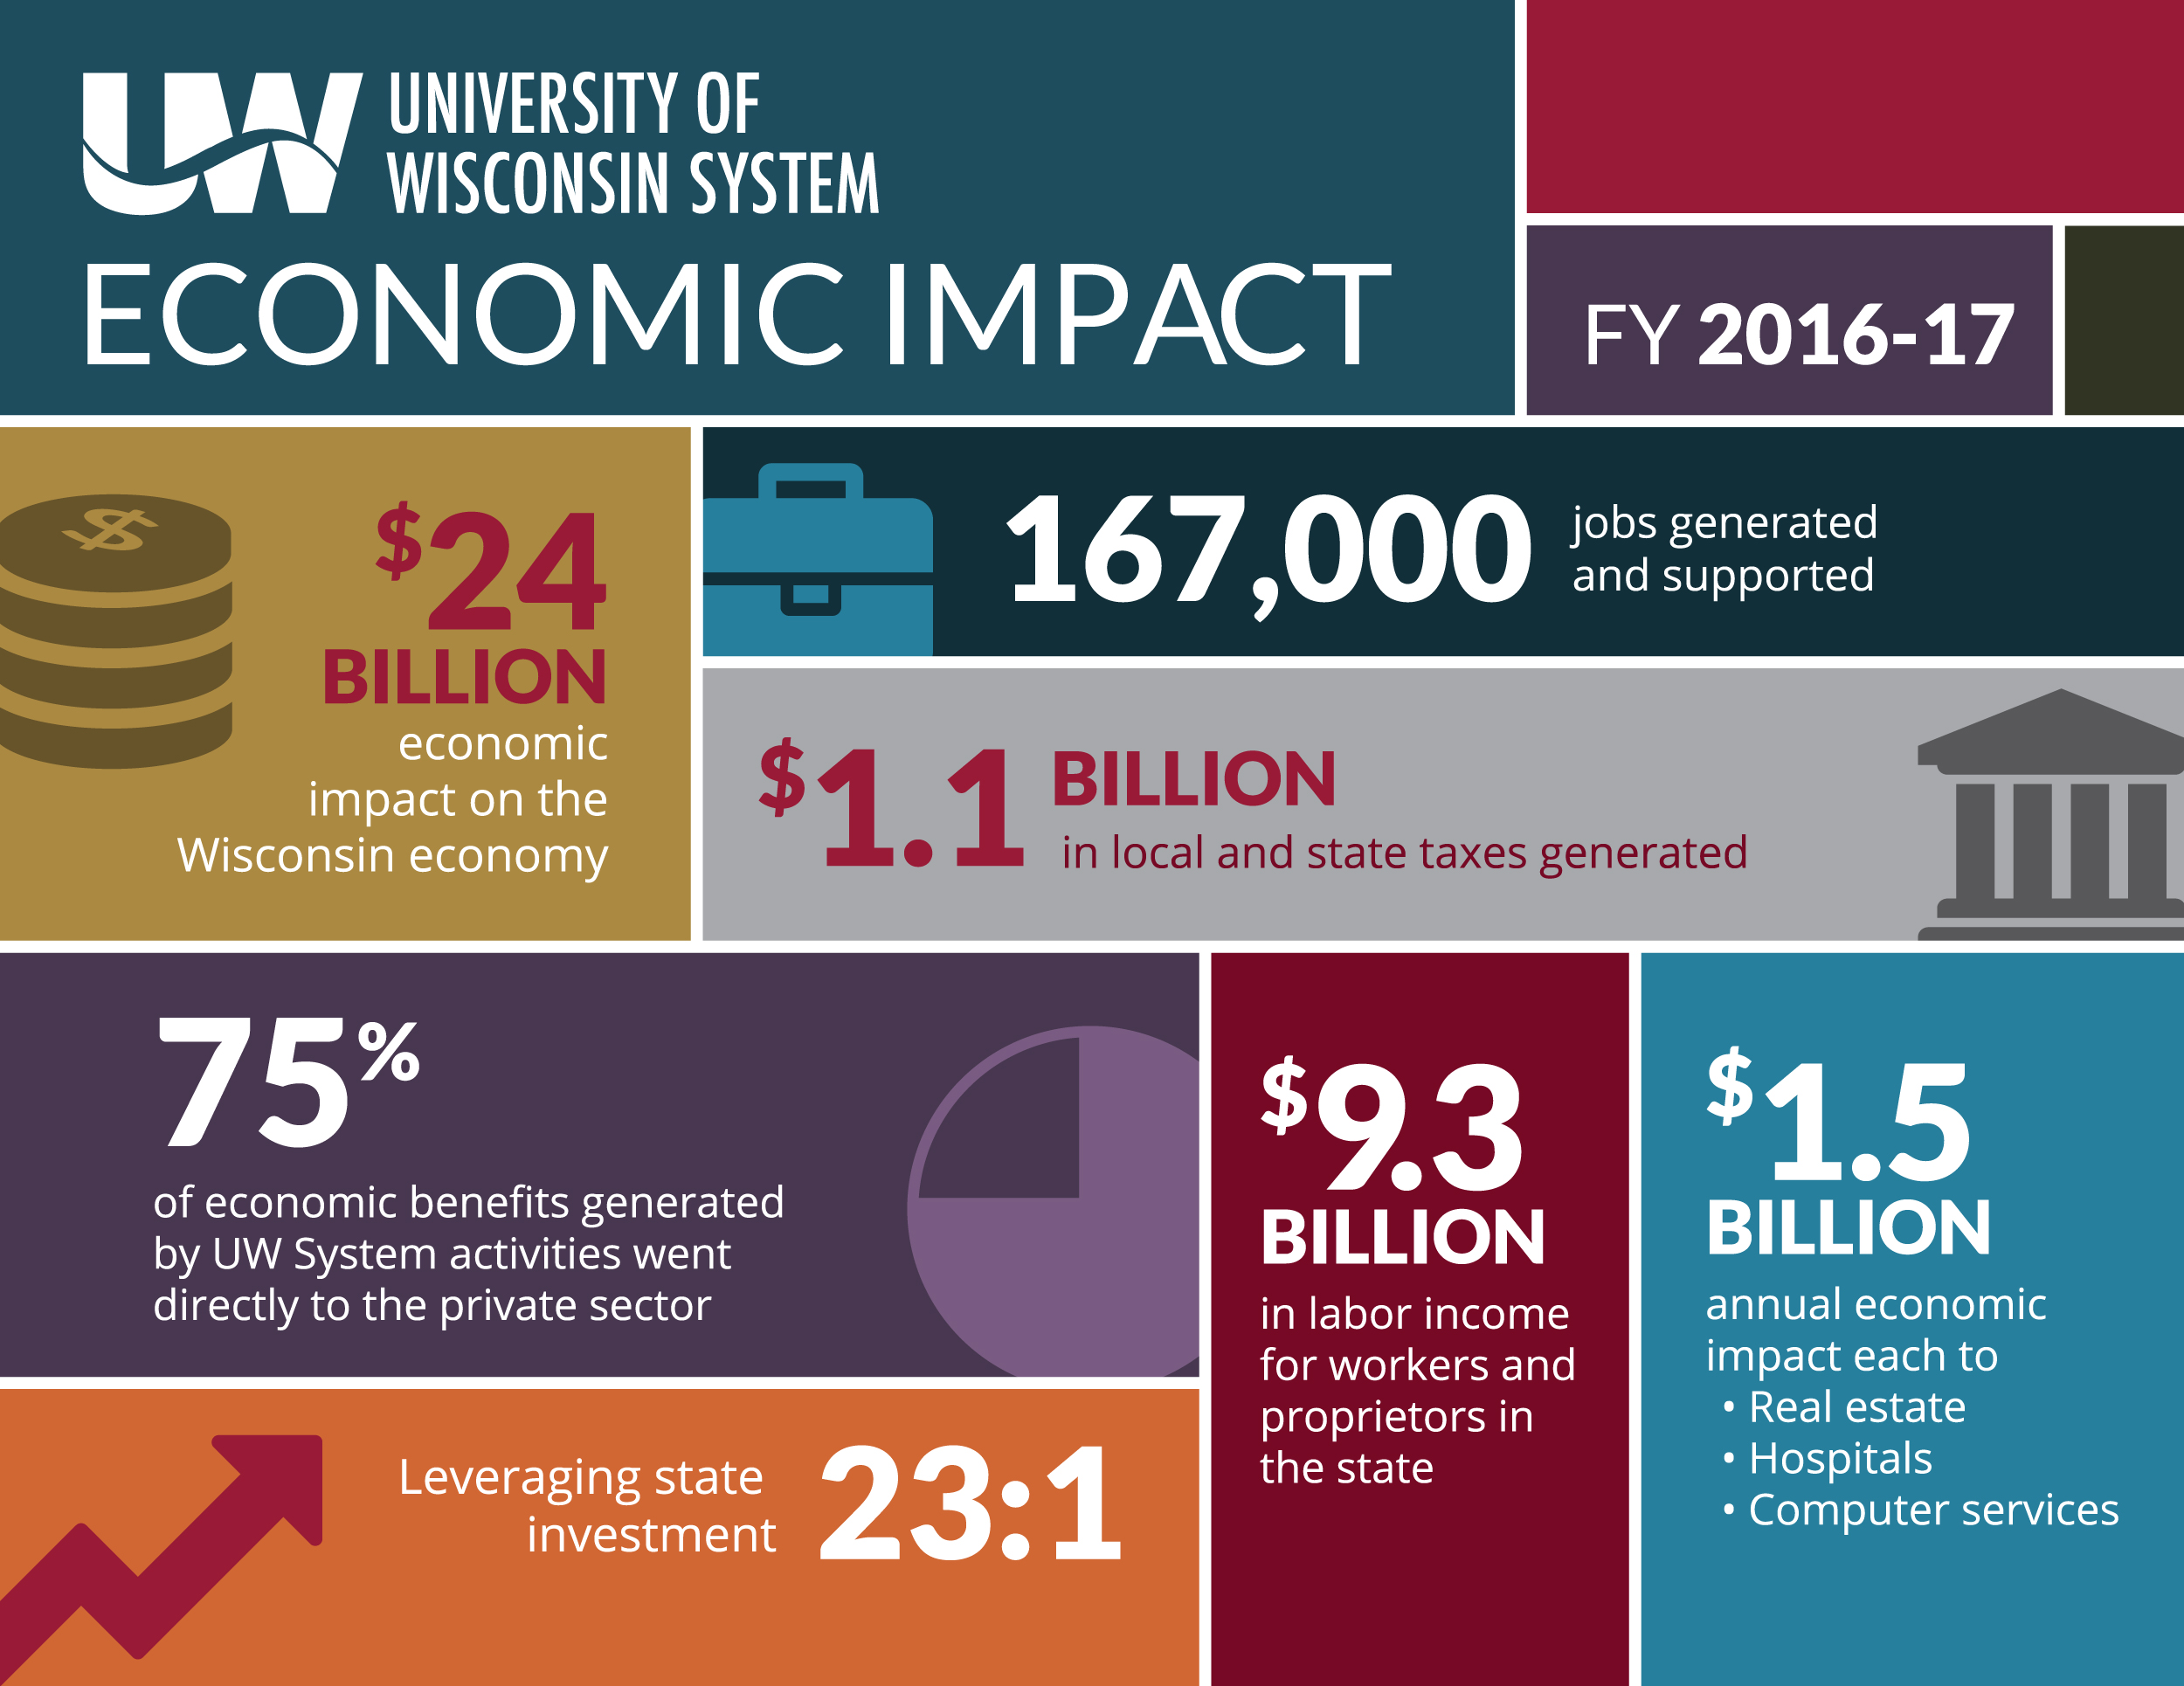 Infographic: UW System's $24 Billion Economic Impact on Wisconsin's economy. 167000 Jobs generated. 75% went to private sector. Leveraging state investment 23:1. $1.1 Billion in local and state taxes generated. $9.3 Billion in labor income.